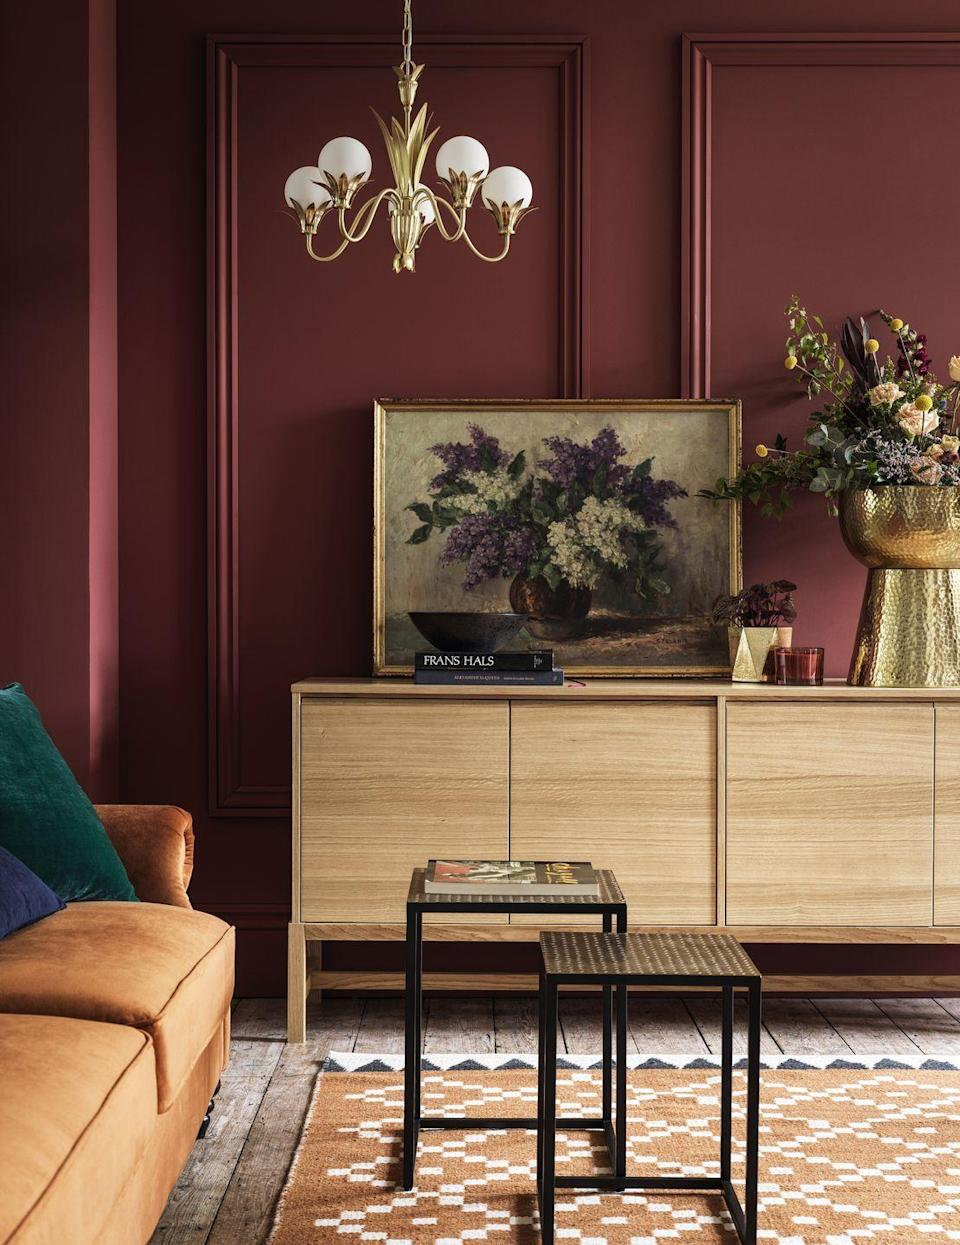 """<p>Evoking an effortless eclecticism, this trend beautifully combines rich velvets with brass, woven rugs, bleached woods and modern accessories. Whether you're on the hunt for a sofa bed or luscious layers to bring warmth in winter, the whole collection feels just wonderful. <strong><br></strong></p><p><strong>READ MORE</strong>: <a href=""""https://www.housebeautiful.com/uk/decorate/living-room/g30980928/small-living-room-ideas/"""" rel=""""nofollow noopener"""" target=""""_blank"""" data-ylk=""""slk:23 small living room ideas to make the most of your space"""" class=""""link rapid-noclick-resp"""">23 small living room ideas to make the most of your space</a></p>"""